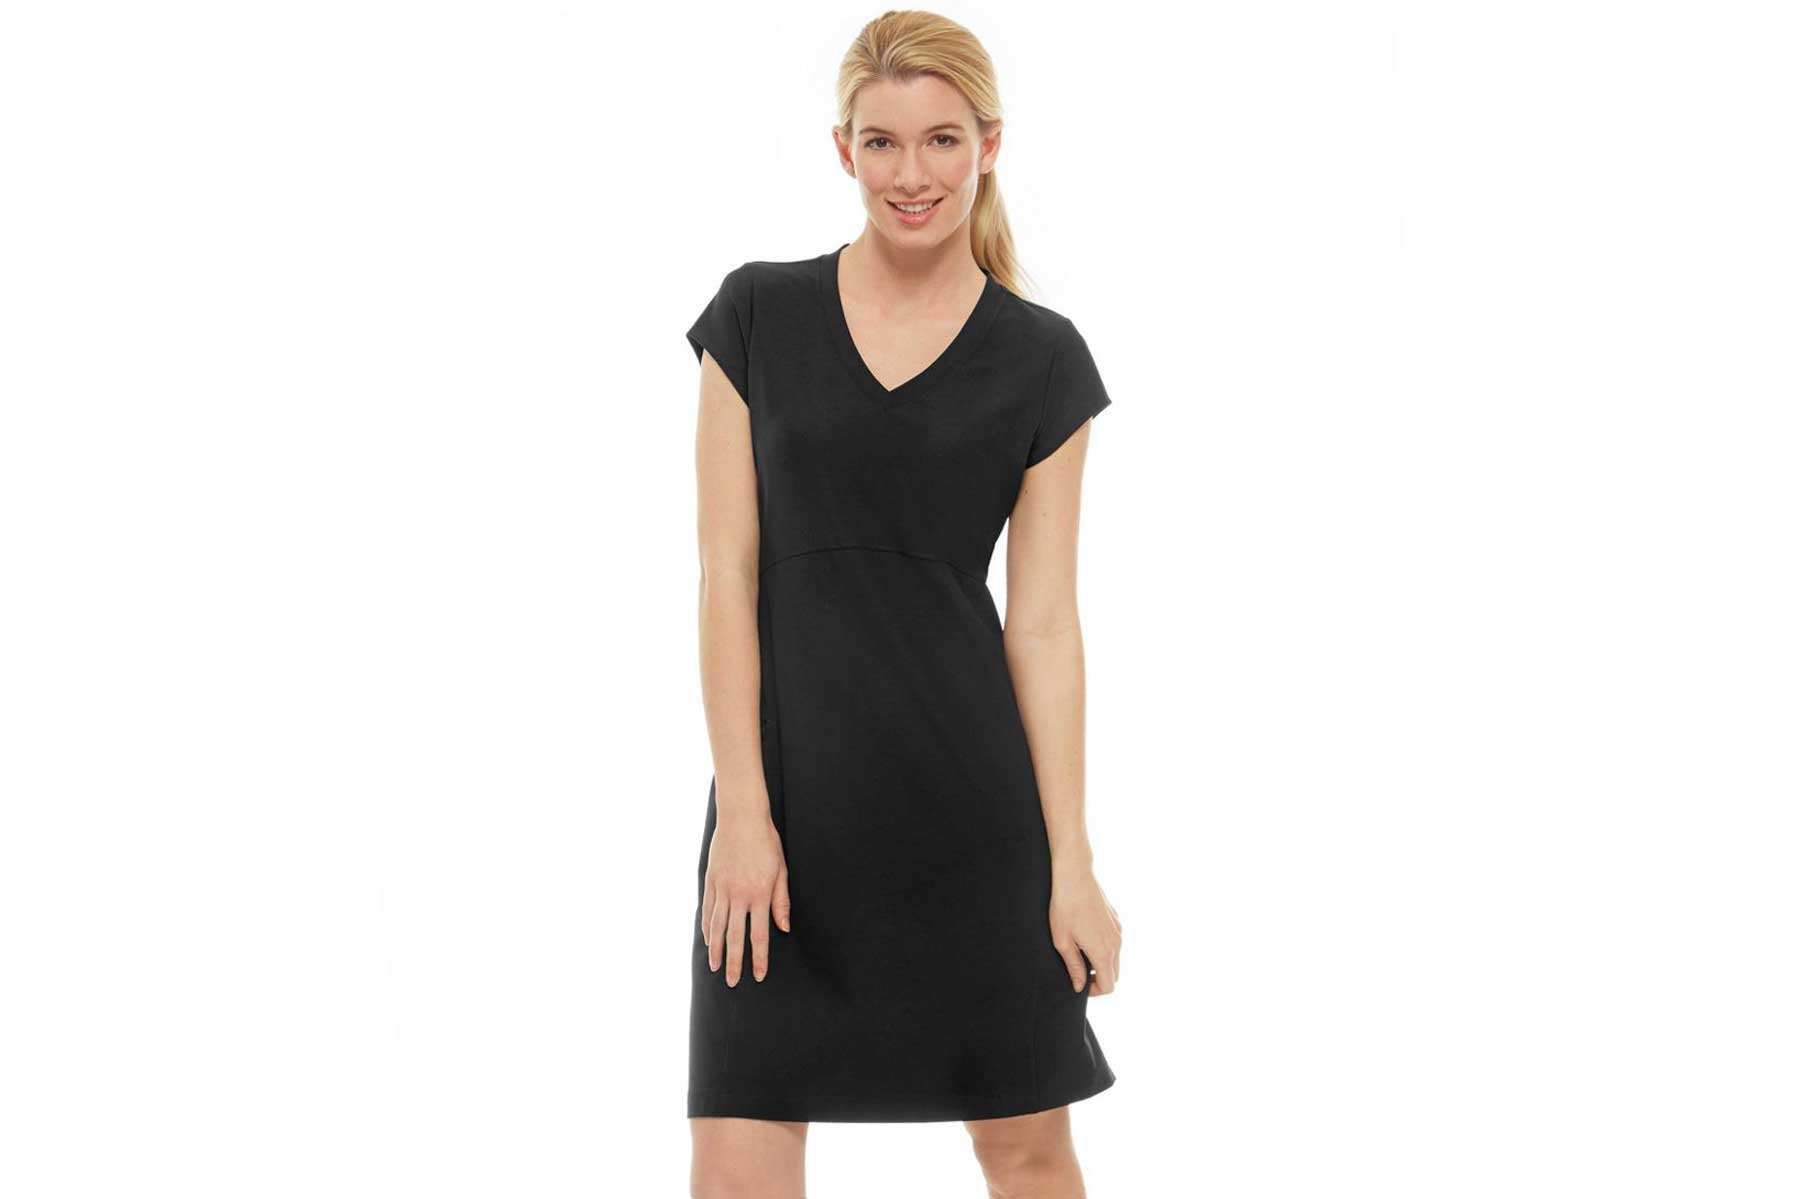 L.L. Bean Women's Fitness Dress